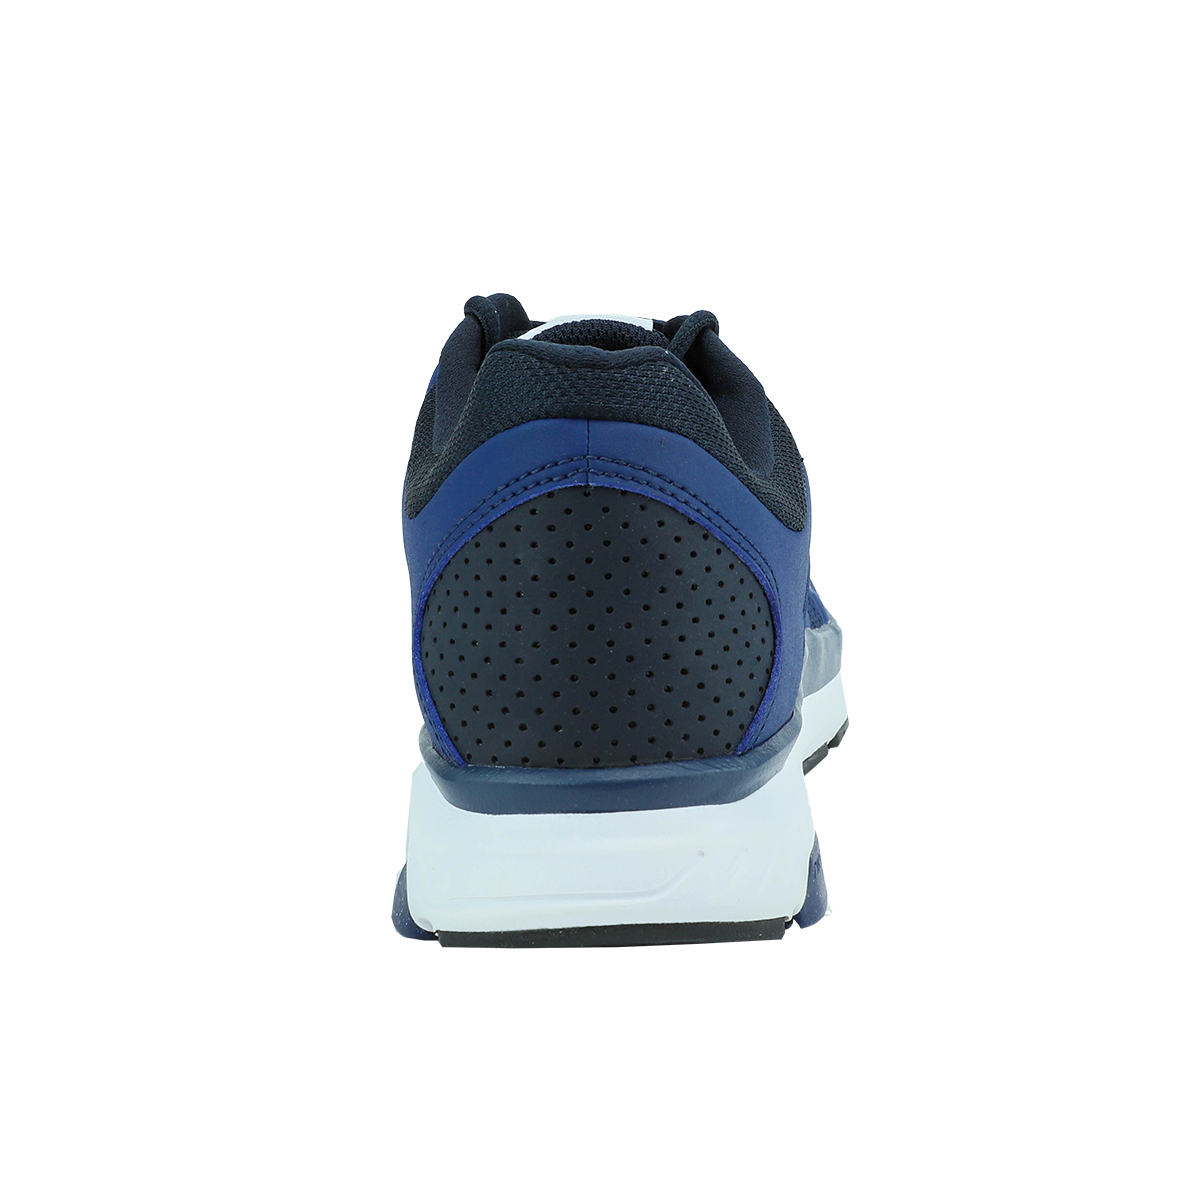 Nike-Men-039-s-Dart-12-MSL-Running-Shoes thumbnail 14